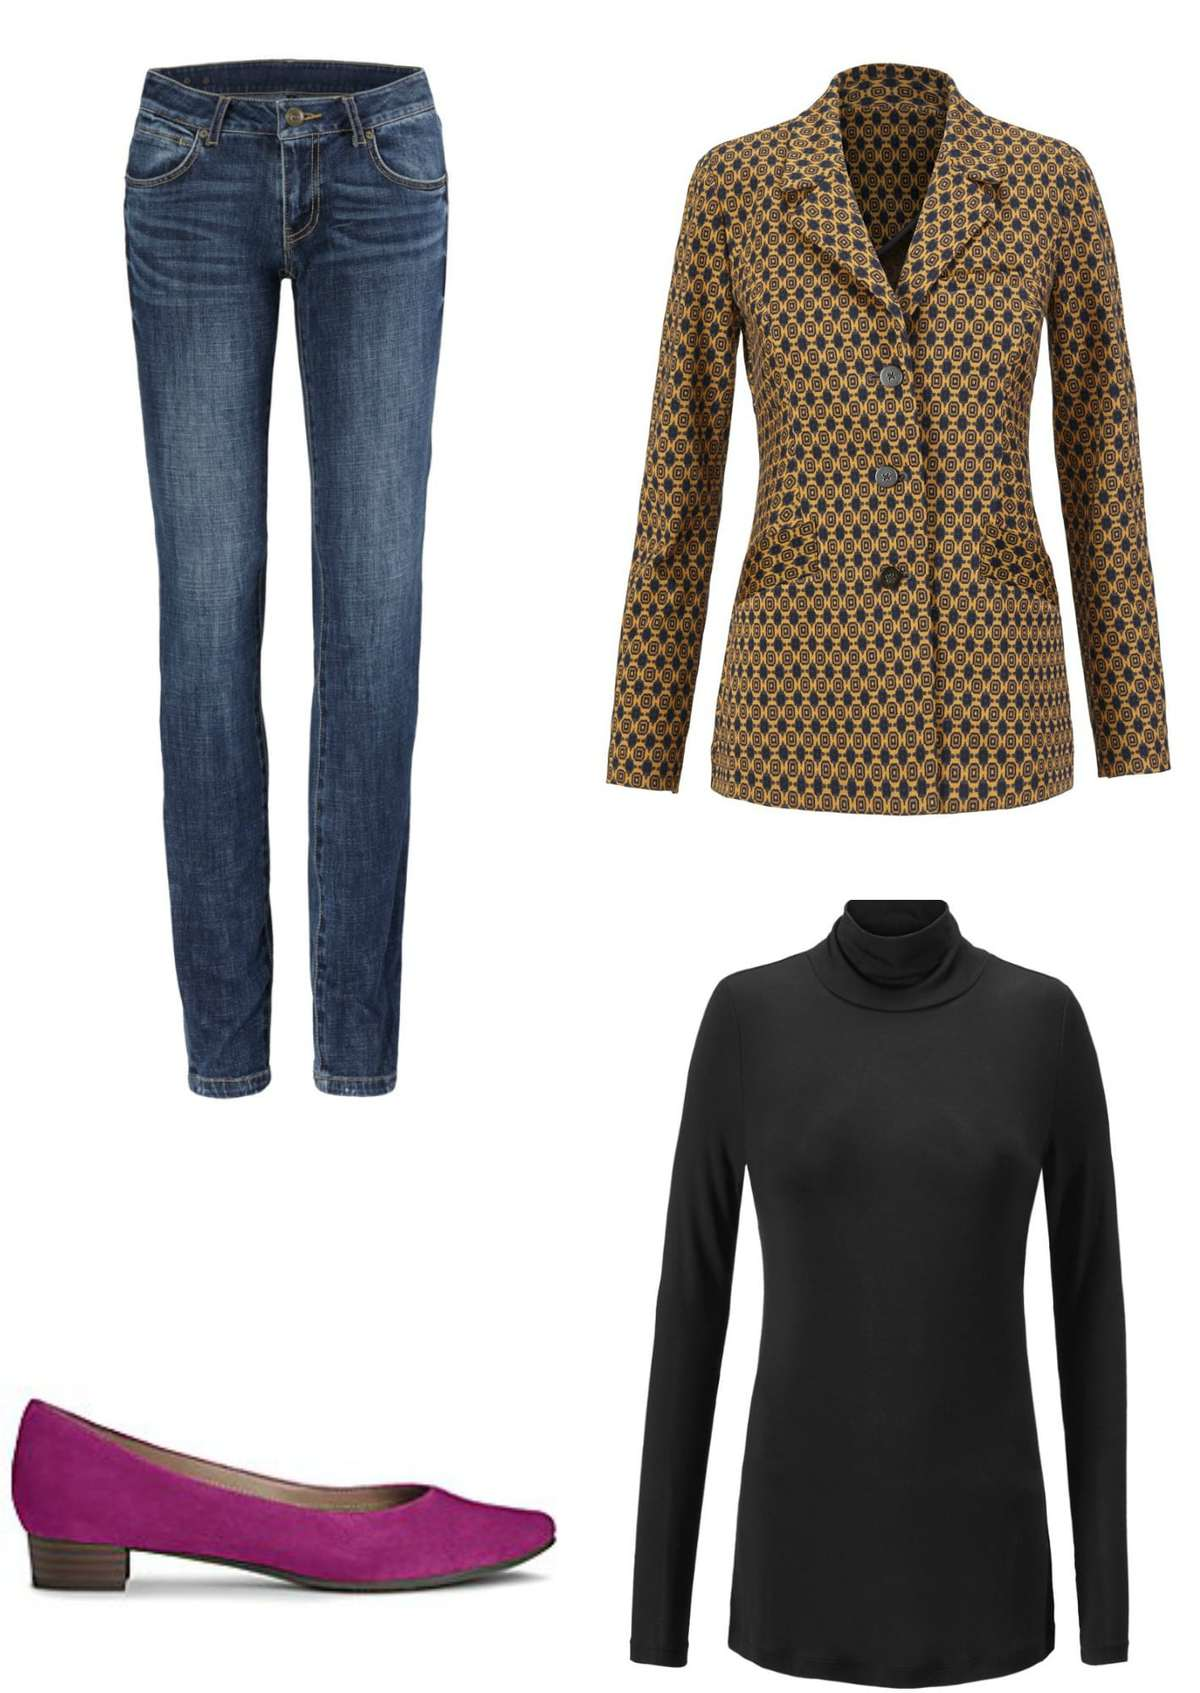 A Standout Weekend: The cabi Standout Jacket styled for the weekend with the Dover Skinny Jeans, Layer Turtleneck, and the Aerosoles Subway Pumps for a pop of color.